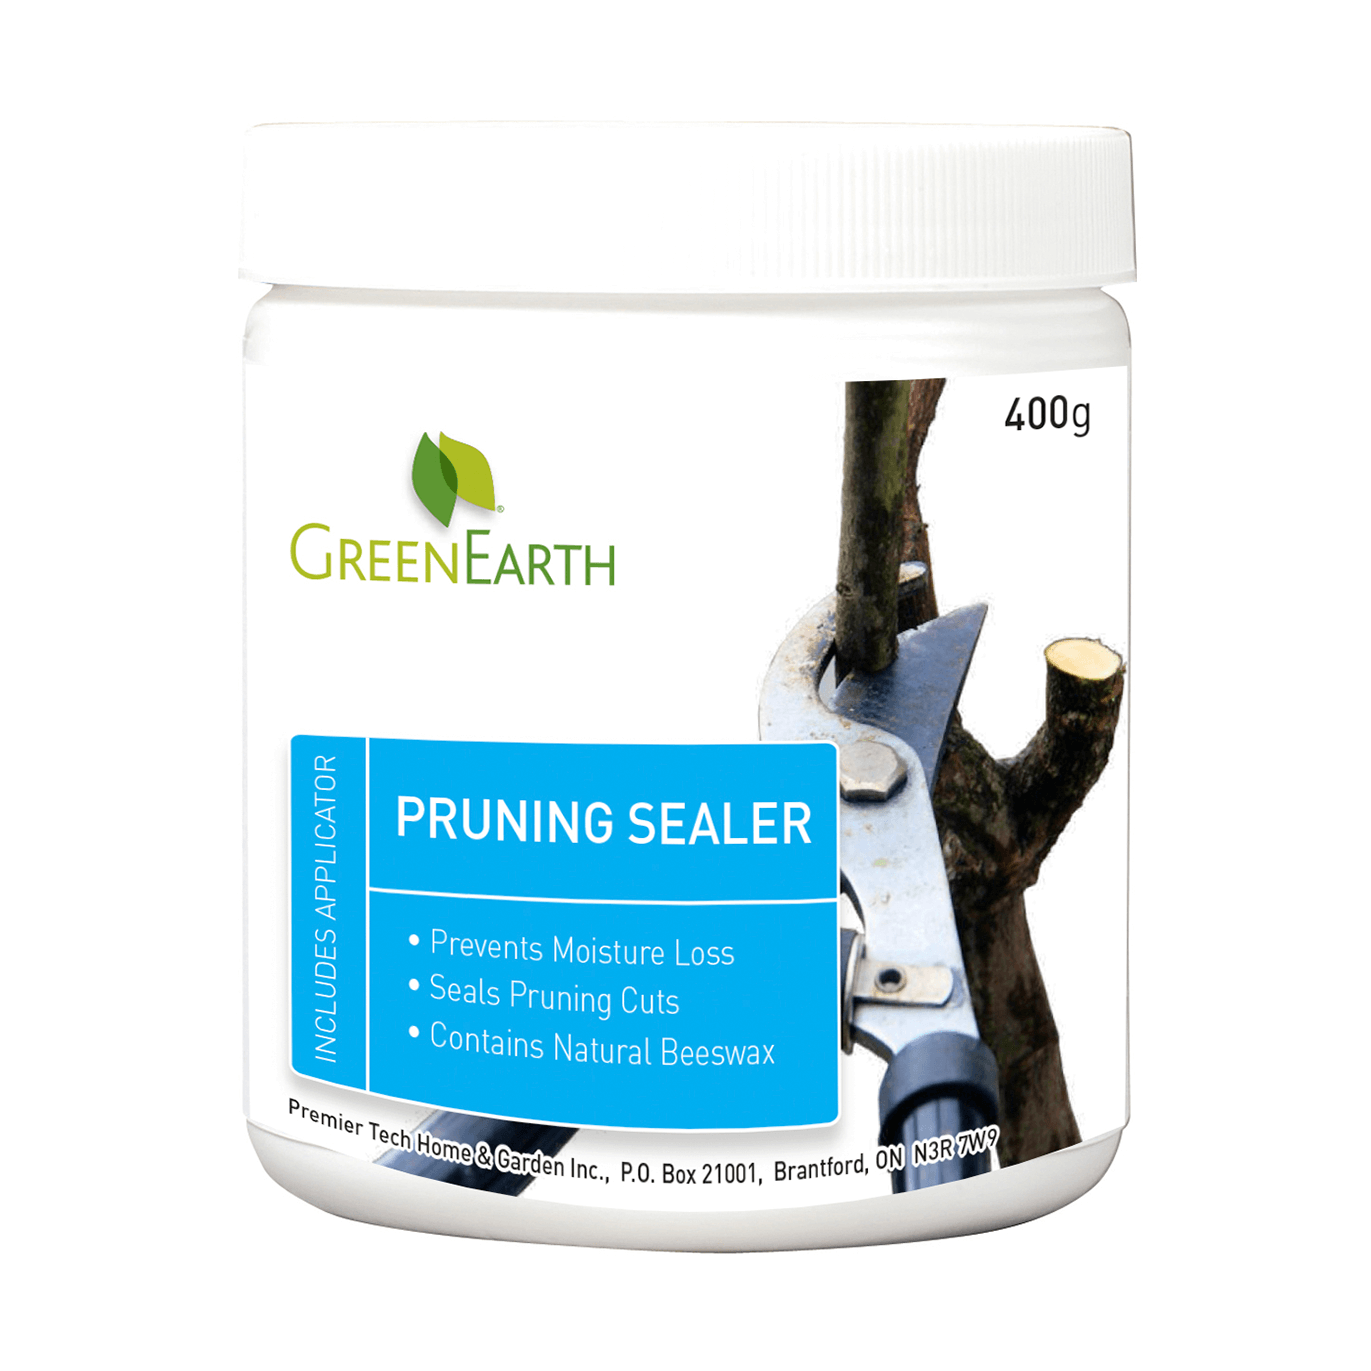 Green Earth Pruning Sealer